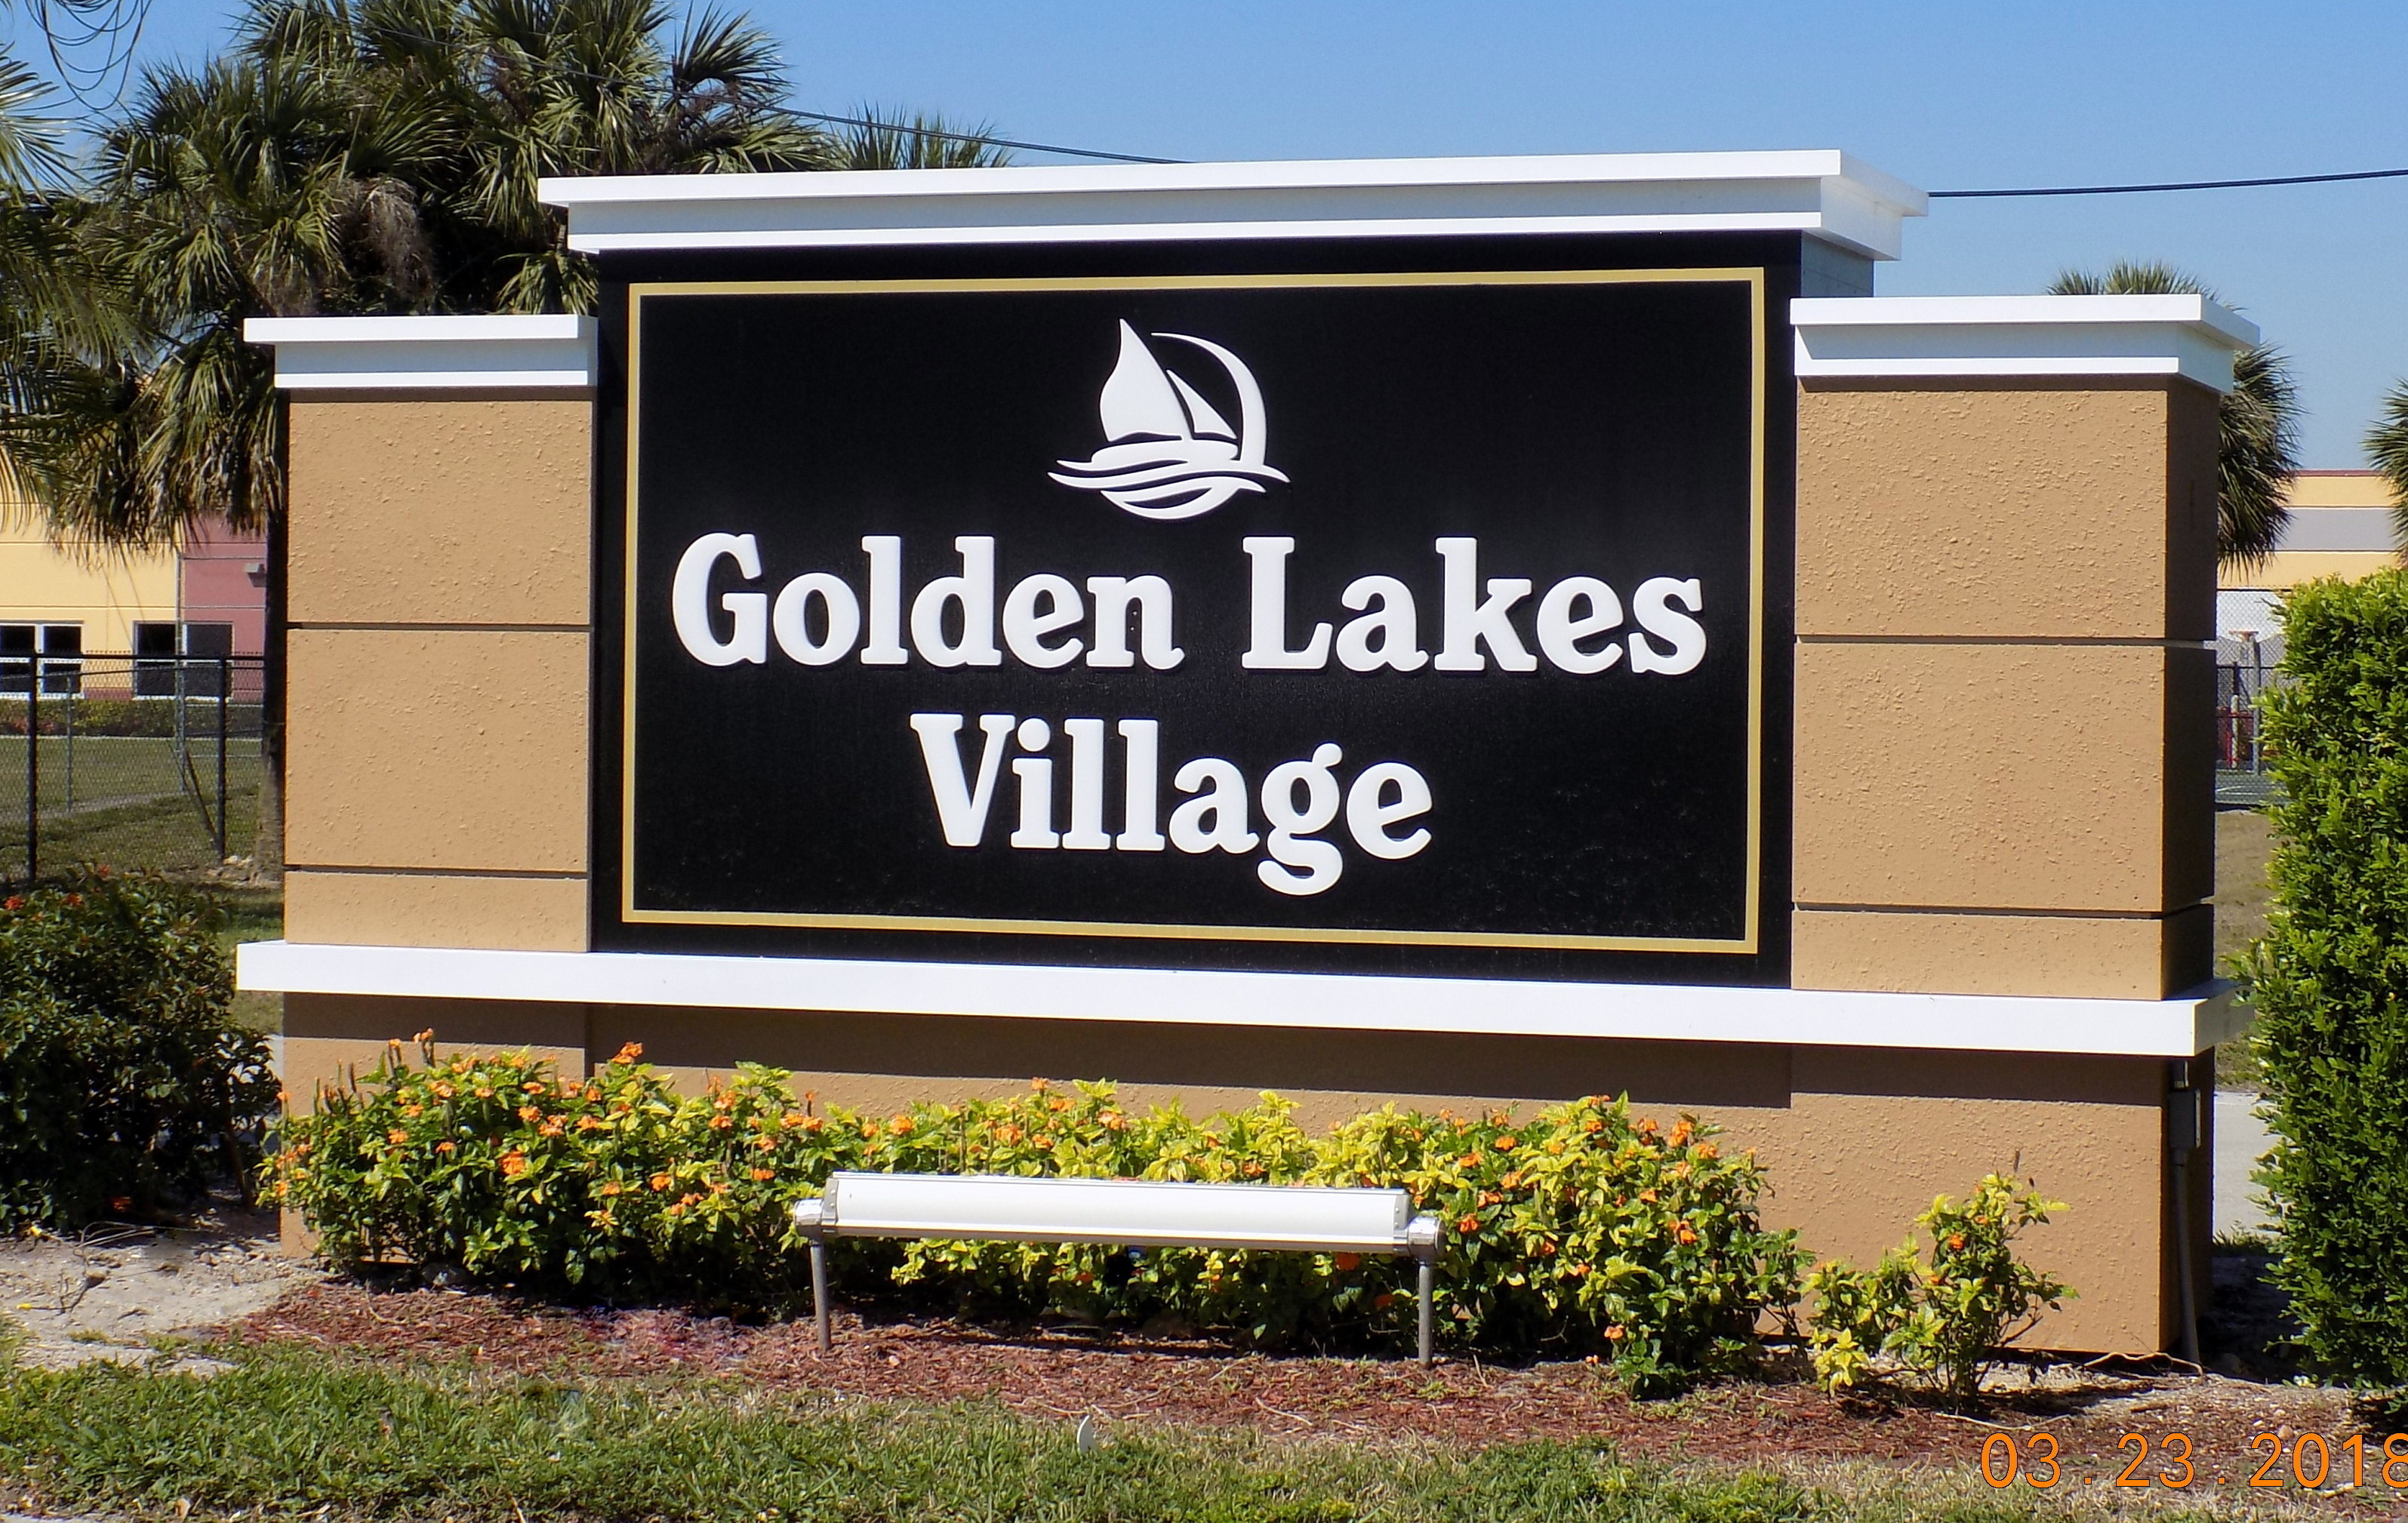 A1. Golden Lakes Village